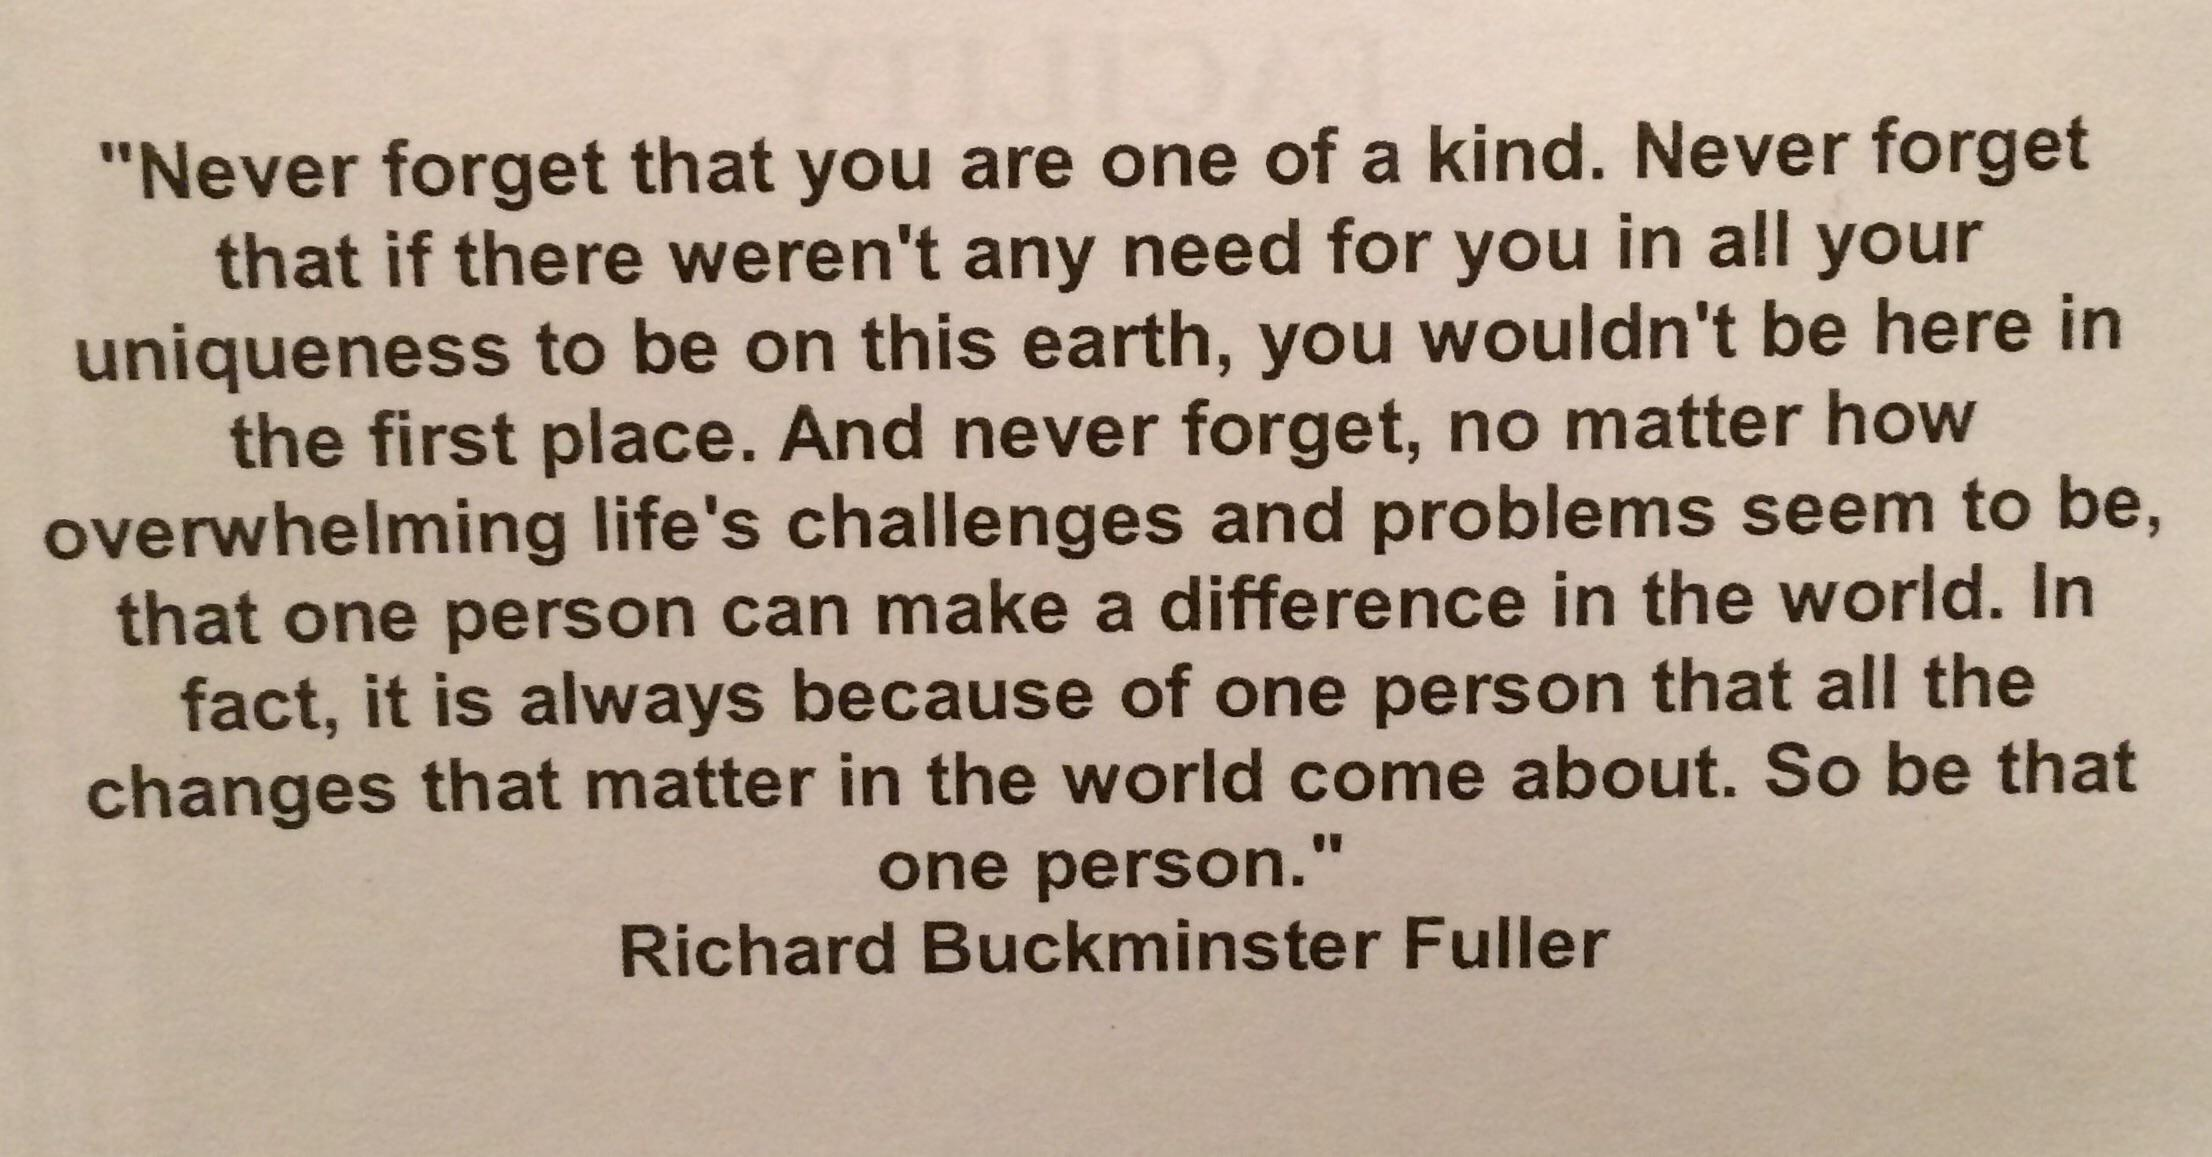 [Image] Never forget that you are one of a kind